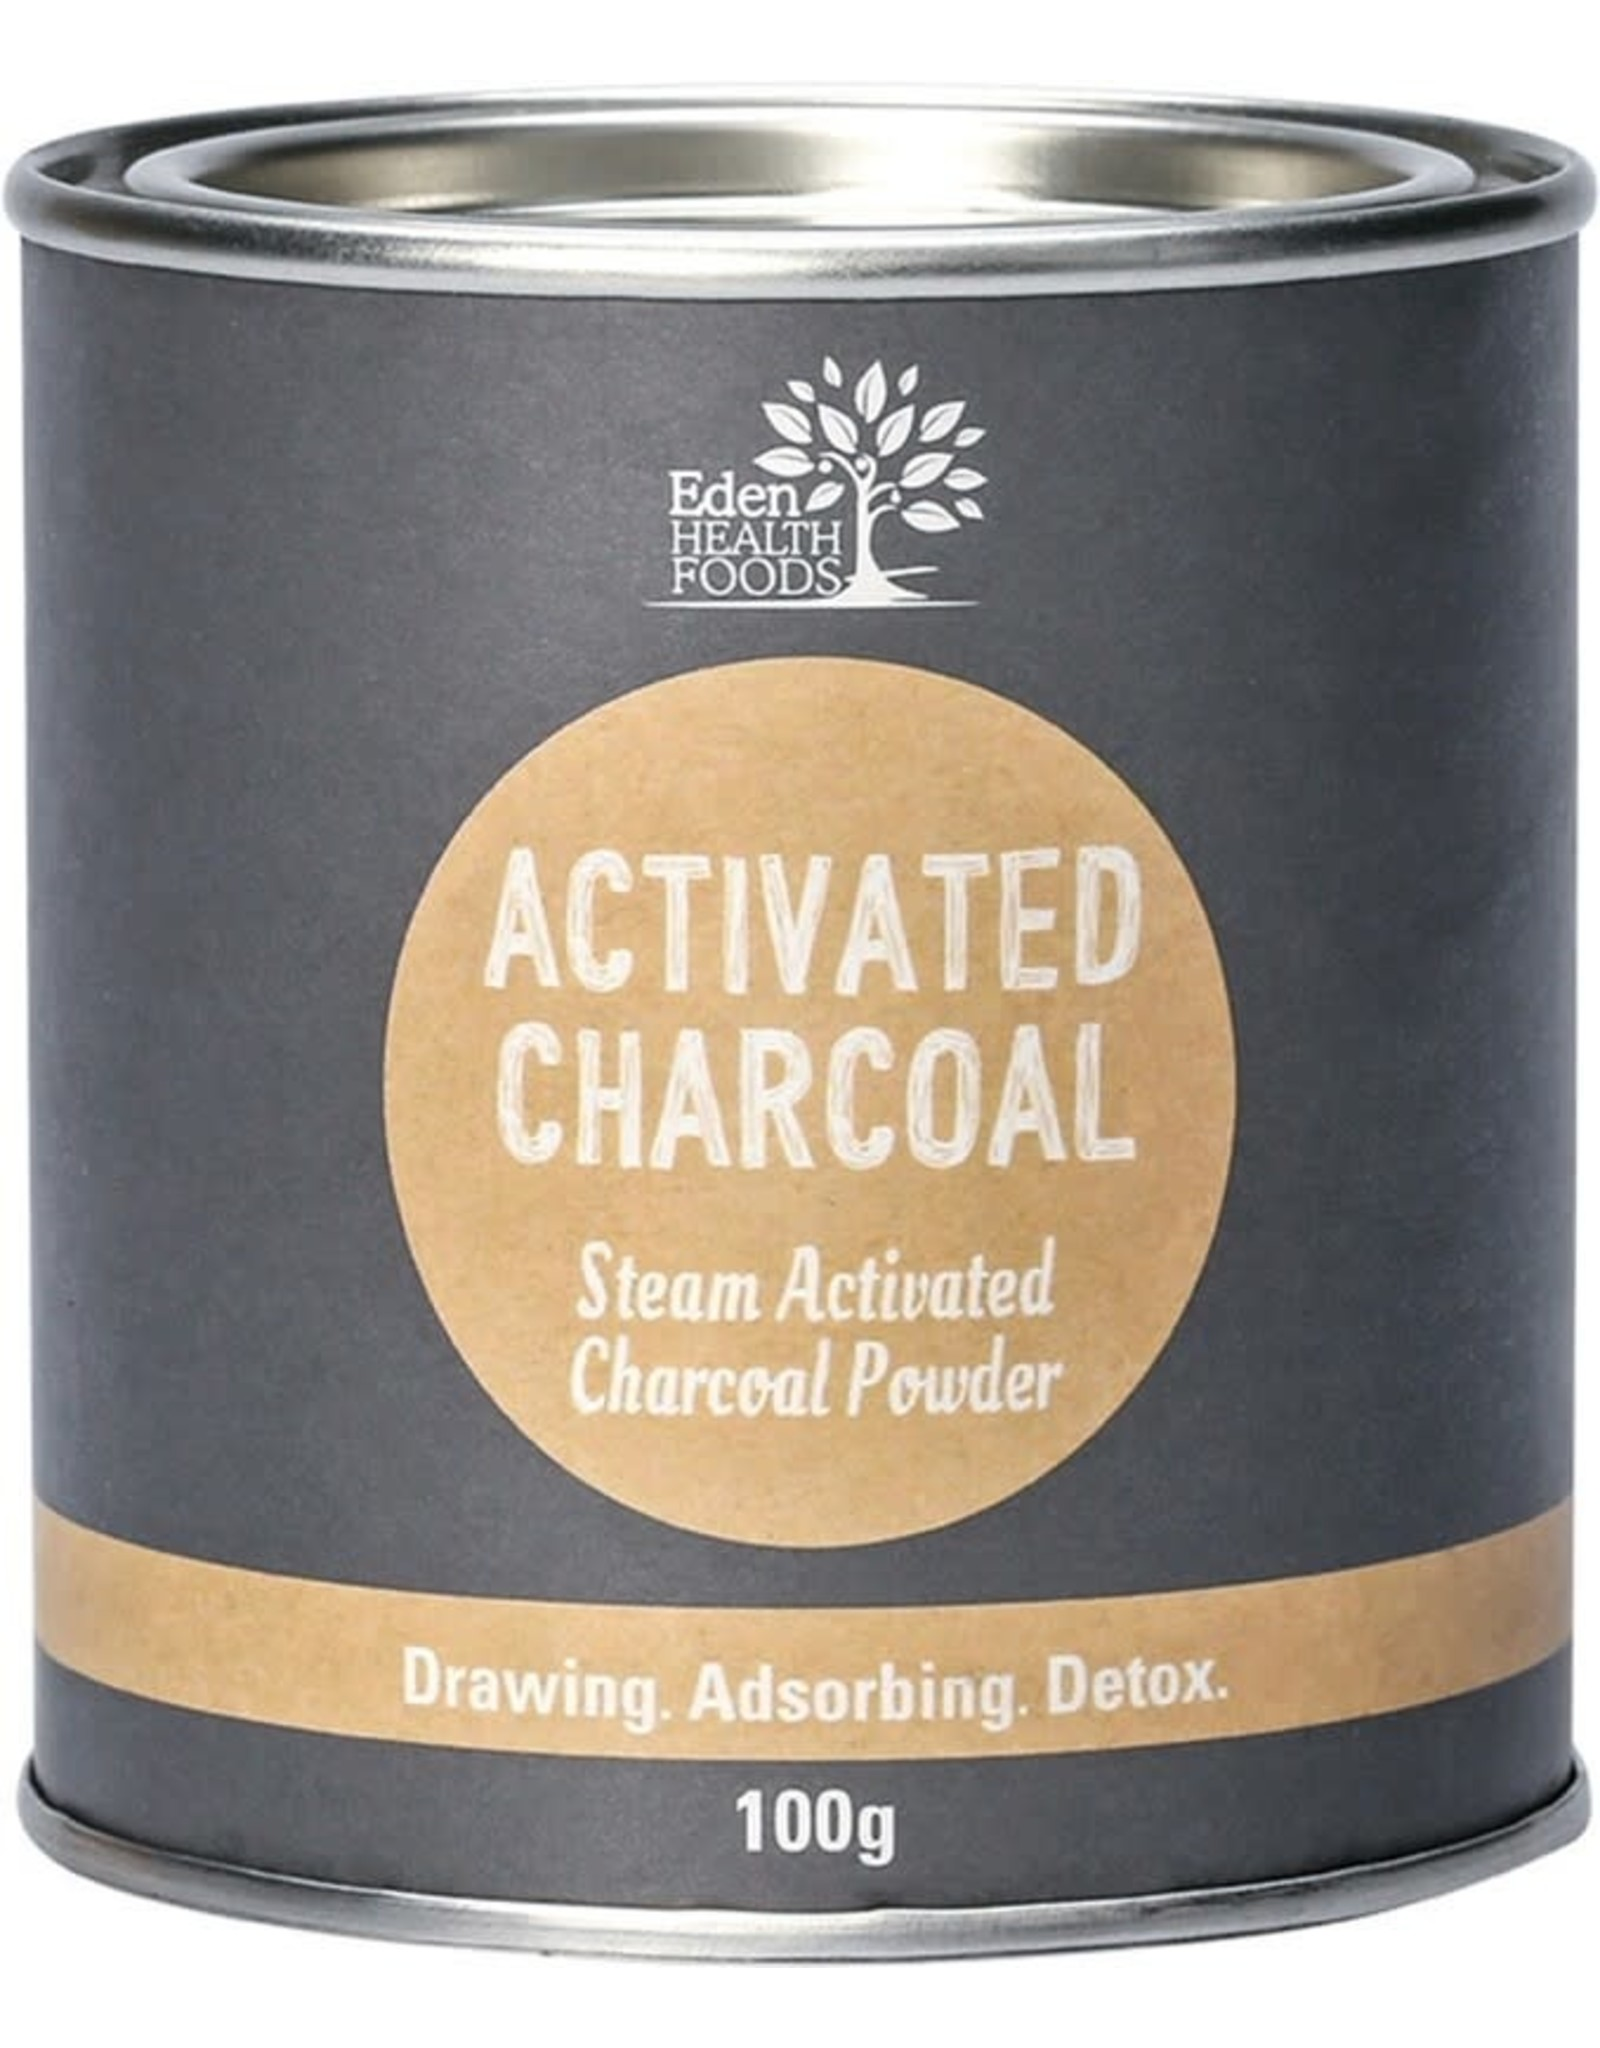 Eden Health Products Activated Charcoal 100G